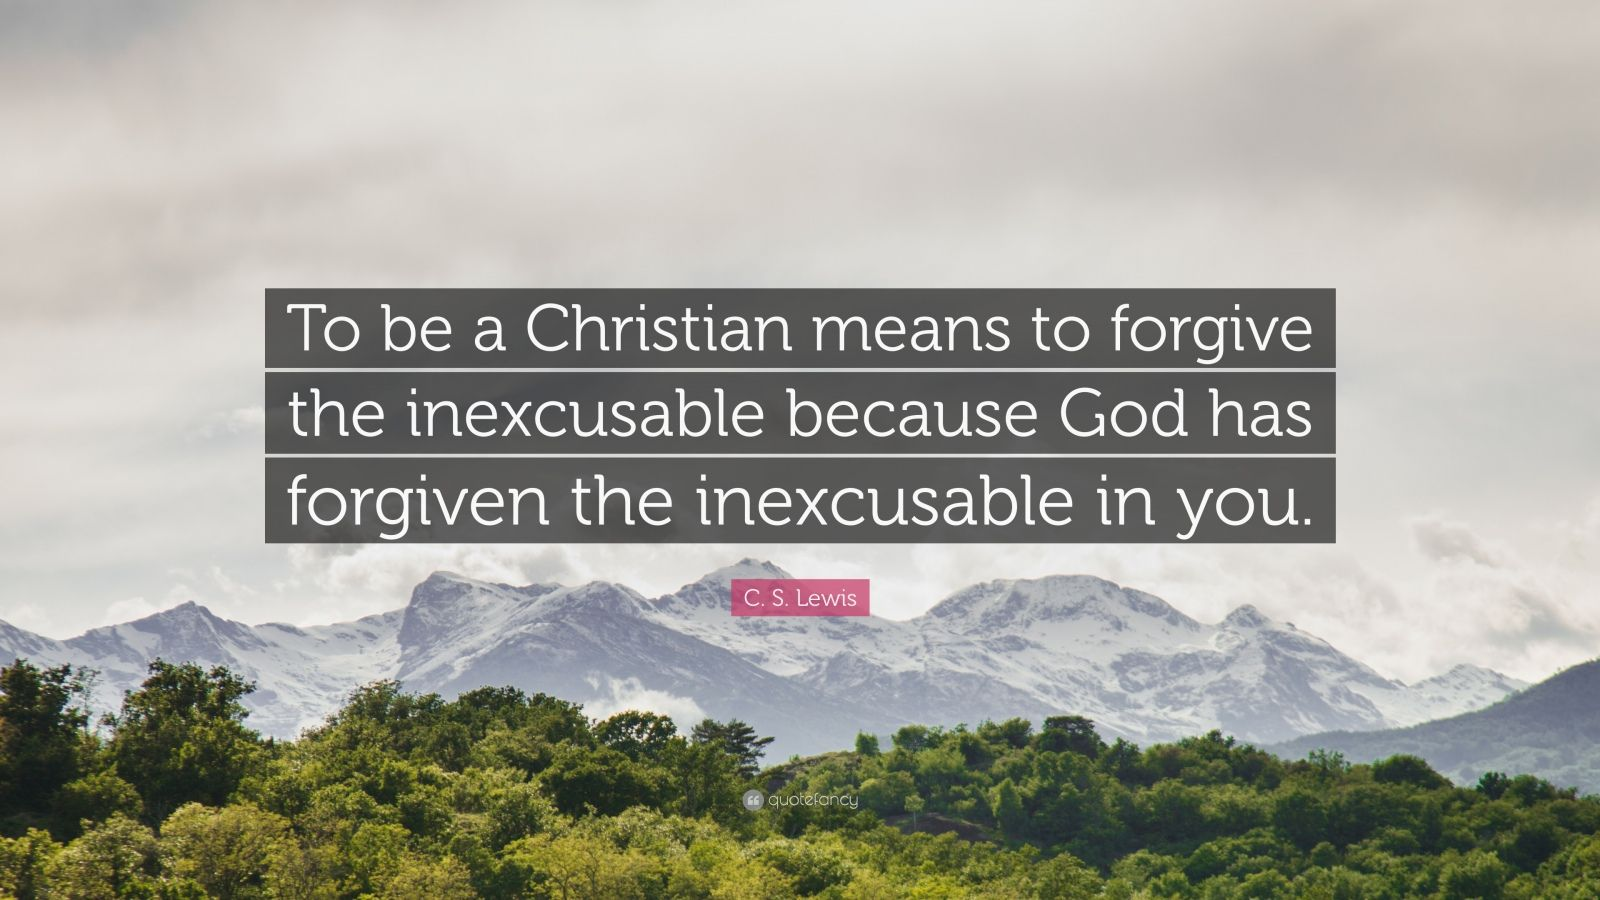 """C. S. Lewis Quote: """"To be a Christian means to forgive the inexcusable because God has forgiven the inexcusable in you."""""""